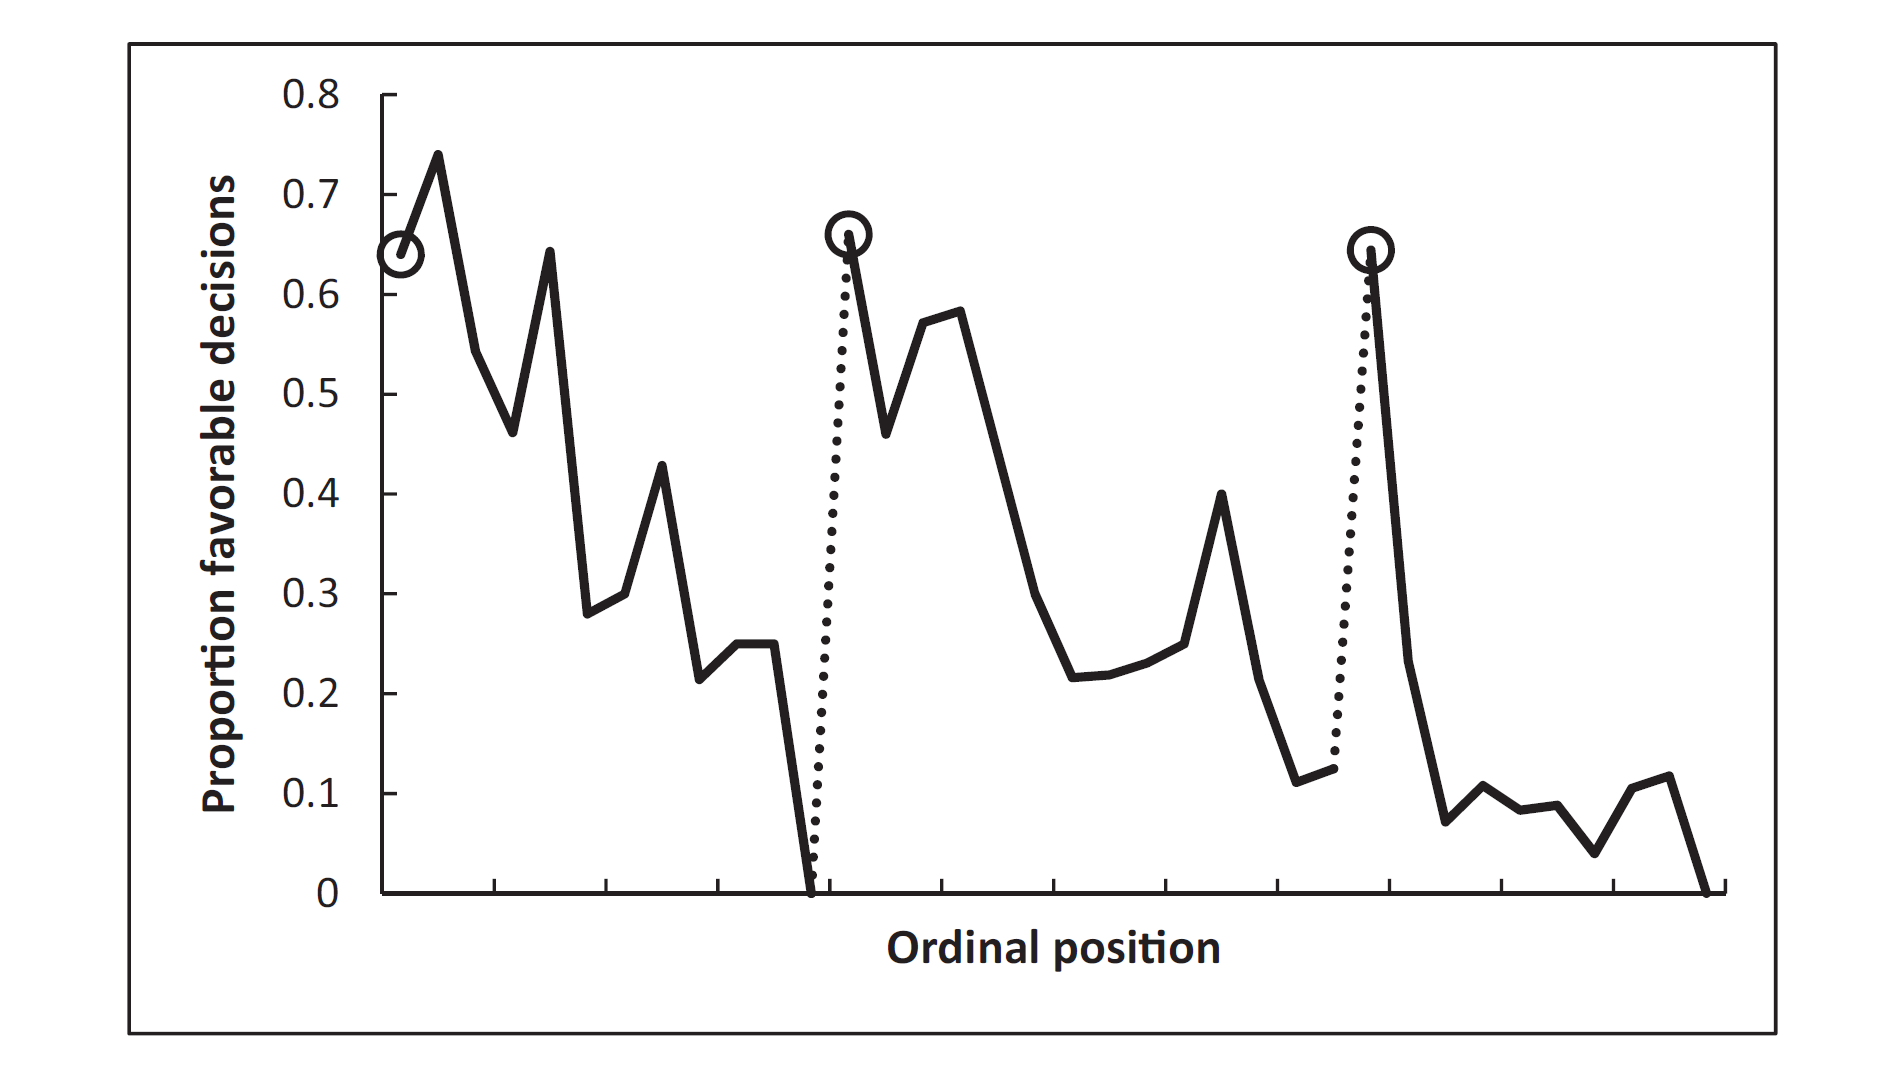 Graph showing the decline in the judge's decision making